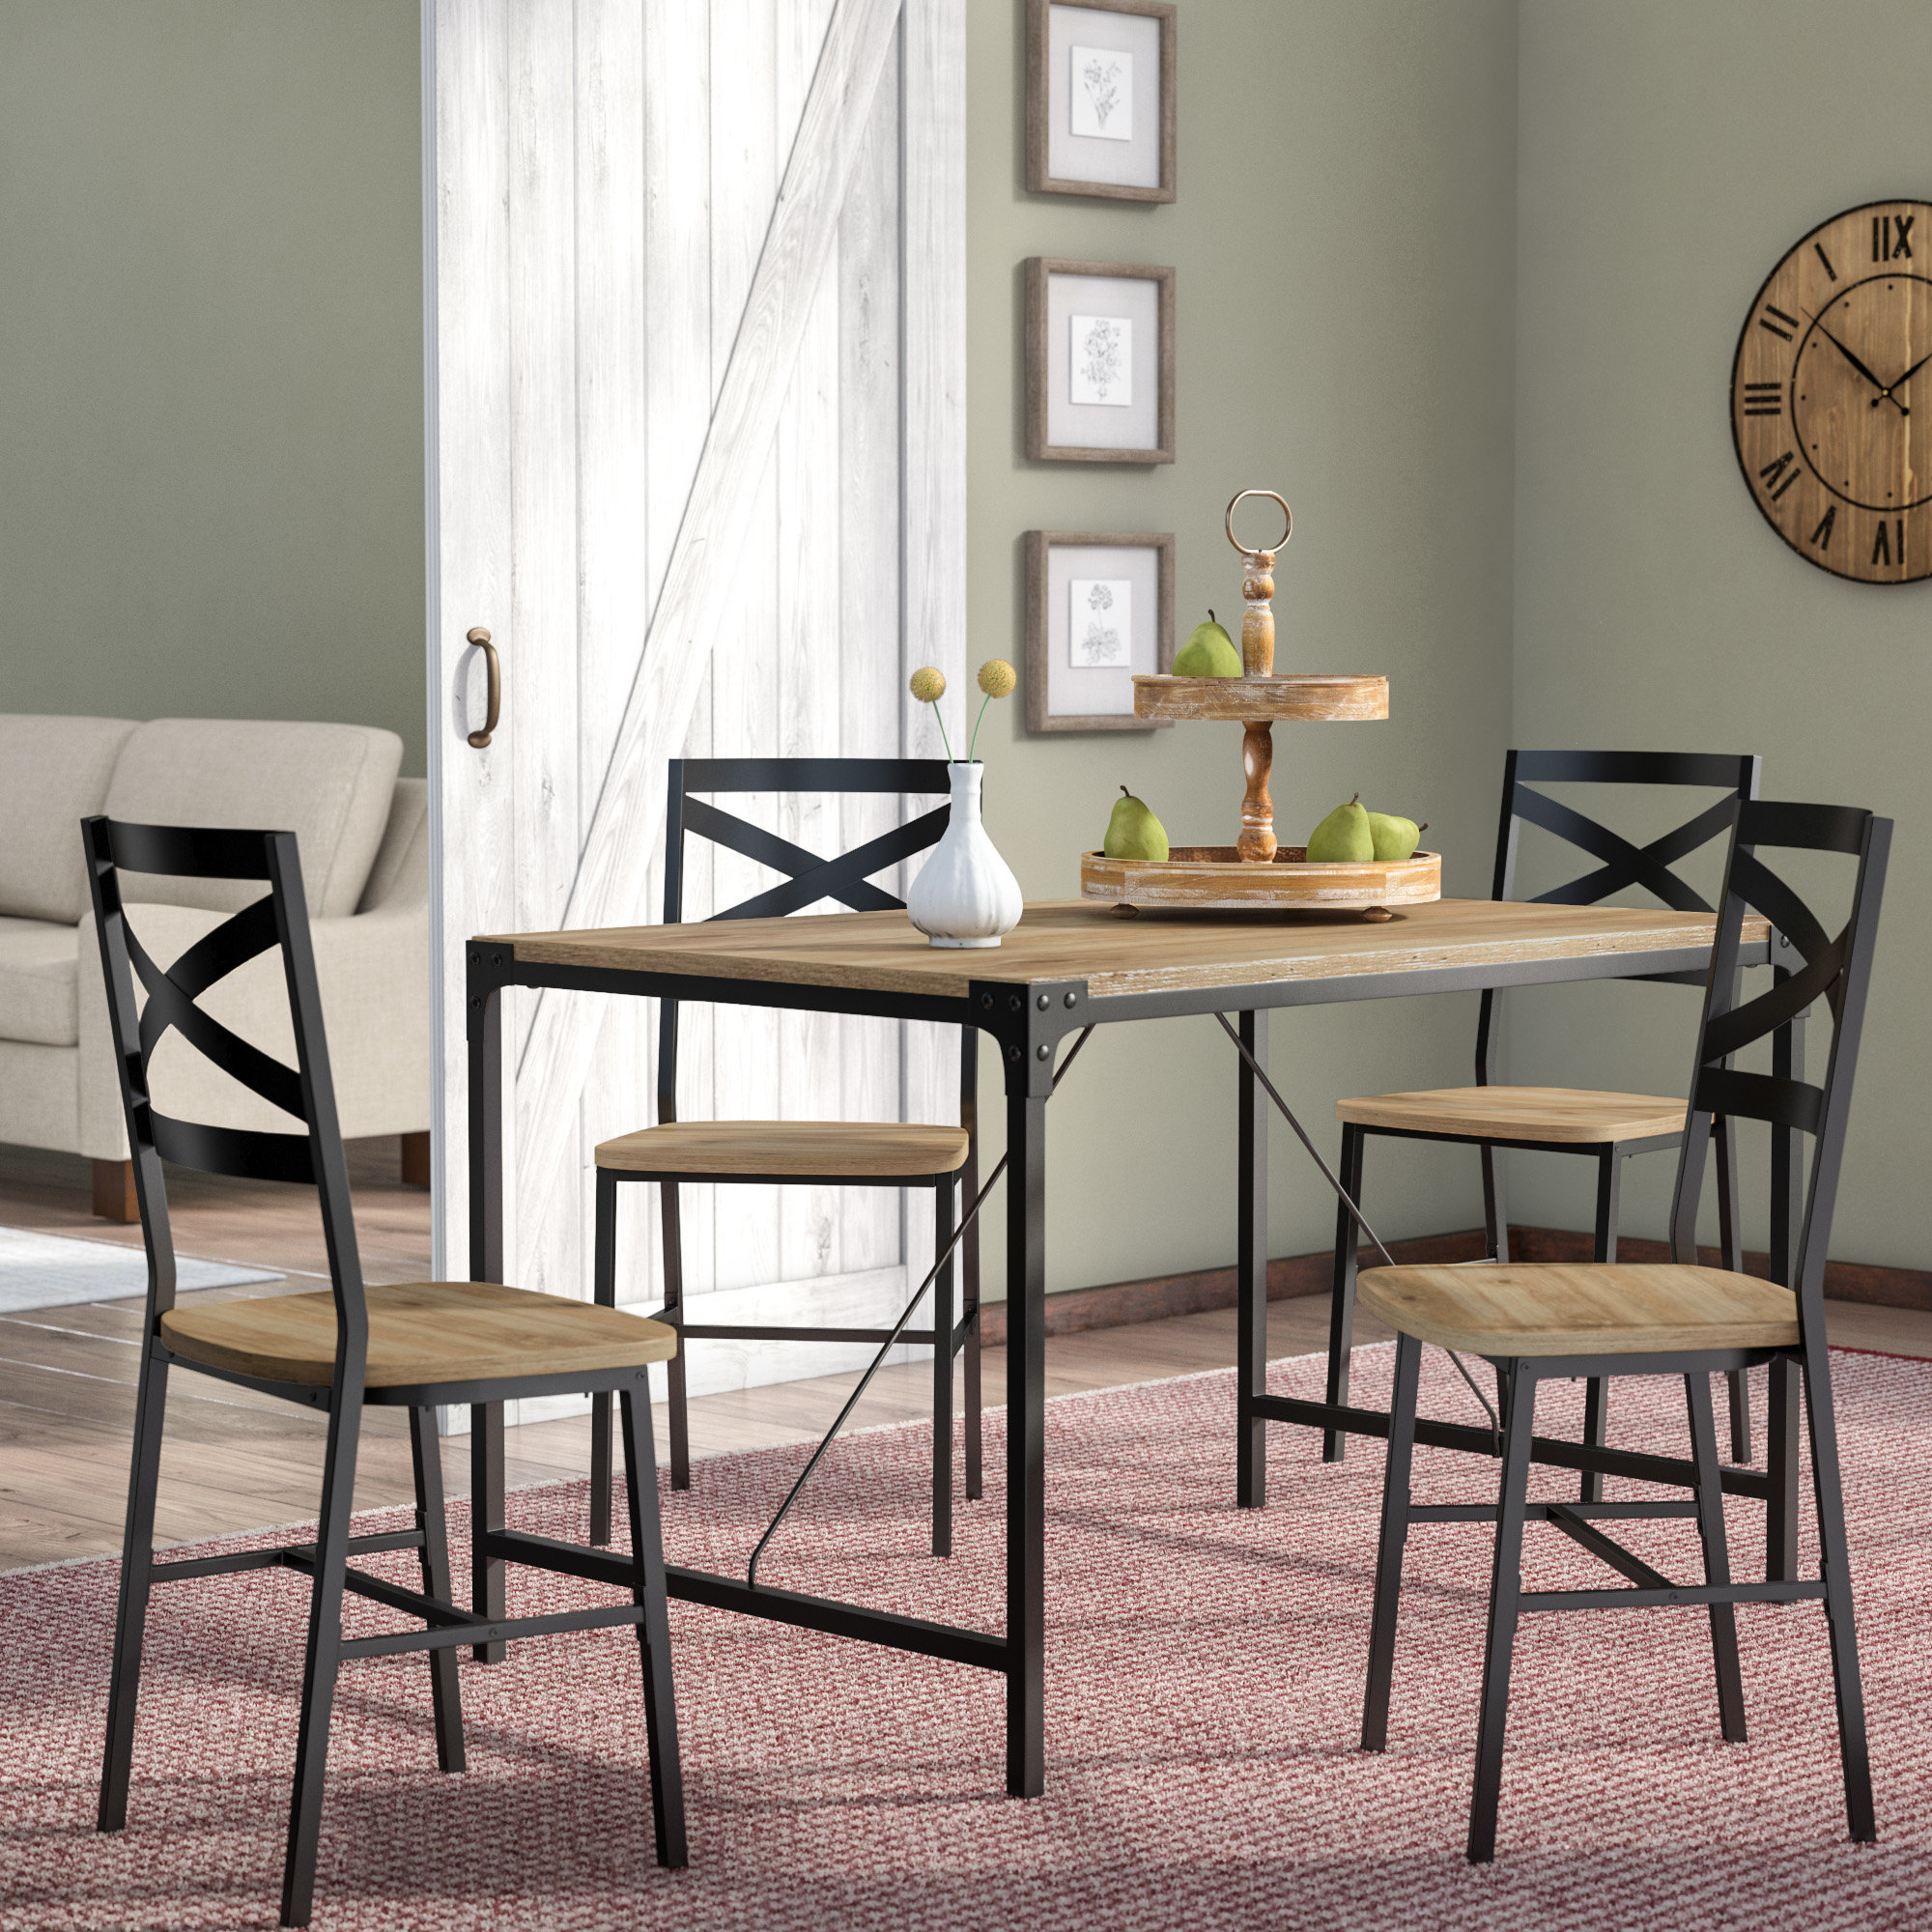 Widely Used Samantha 5 Piece Dining Set With Middleport 5 Piece Dining Sets (View 2 of 20)